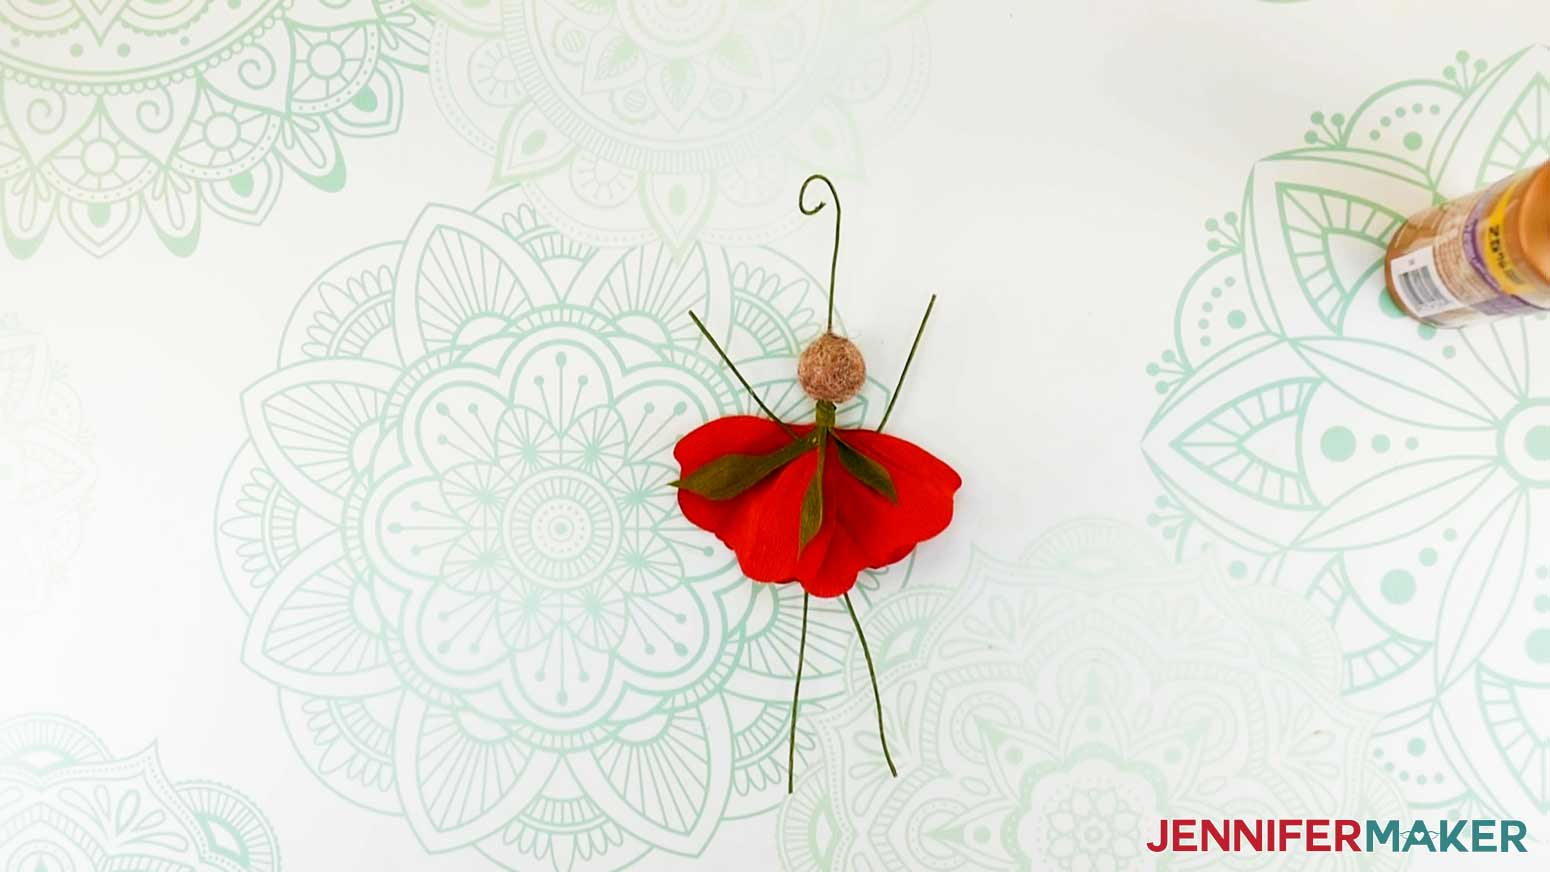 Peony flower fairy doll with all petals and bodice leaves in place